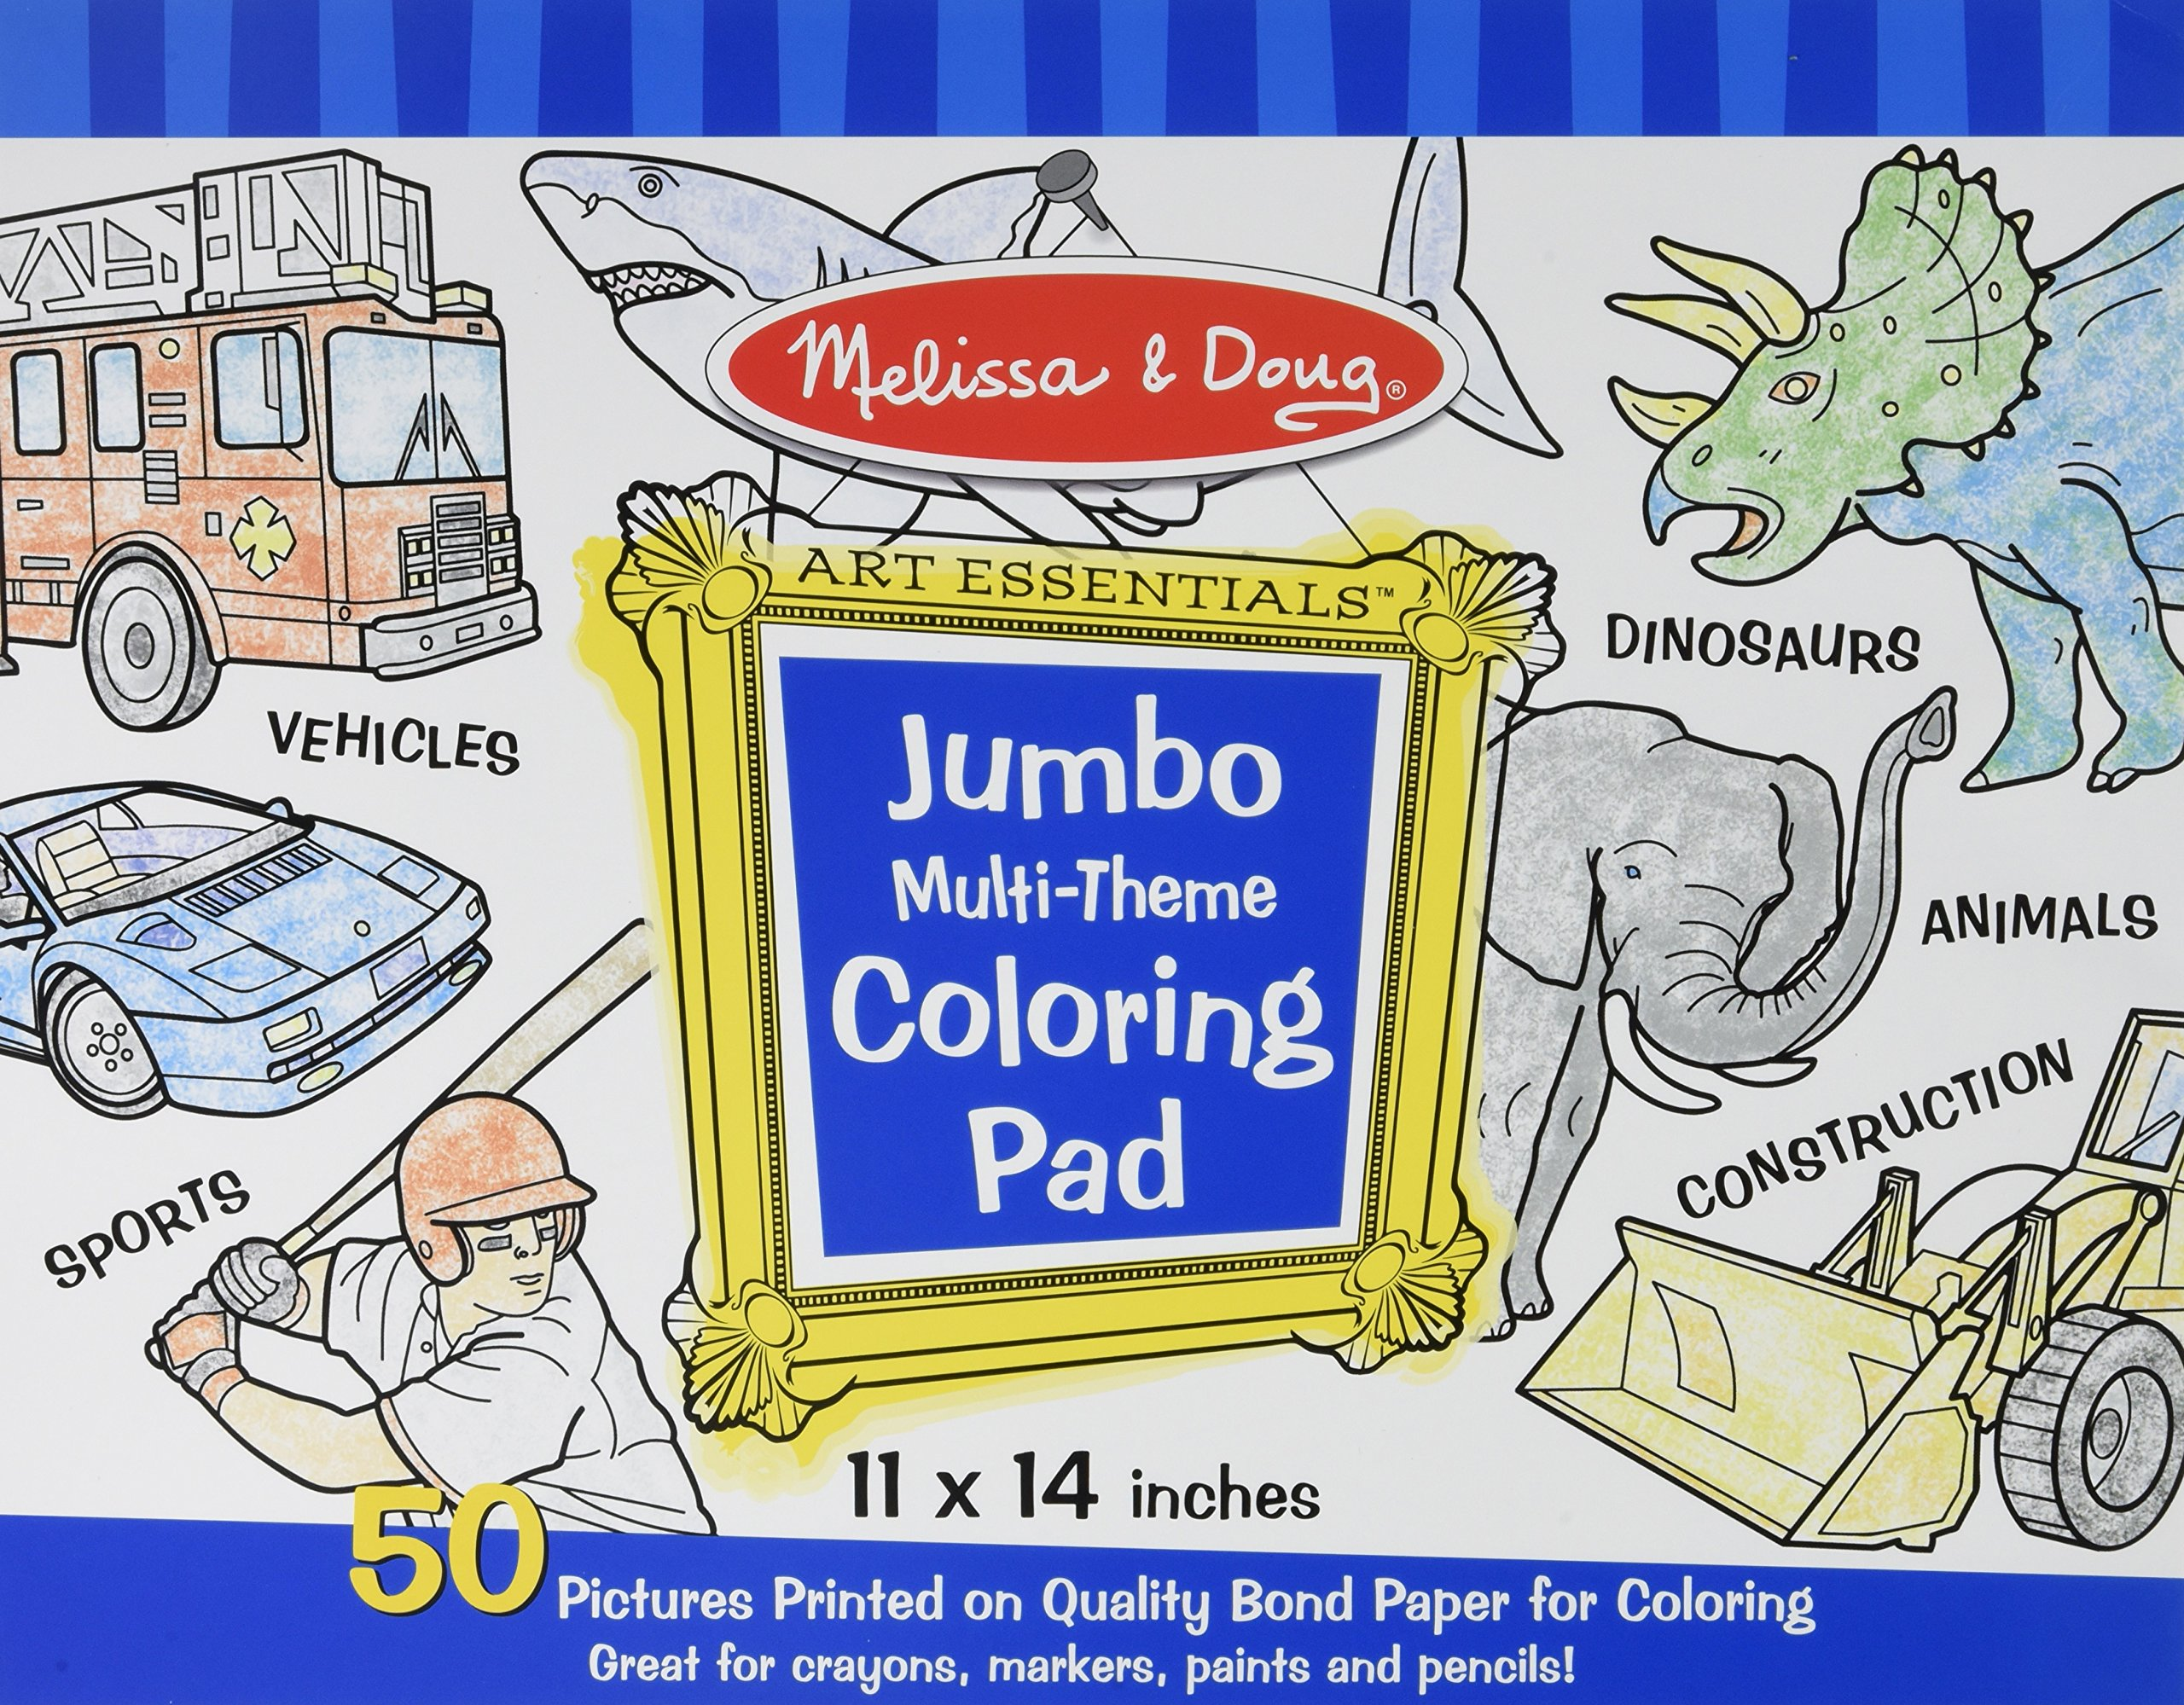 Jumbo Multi-theme Coloring Pad - Blue Coloring Book (Melissa & Doug ...